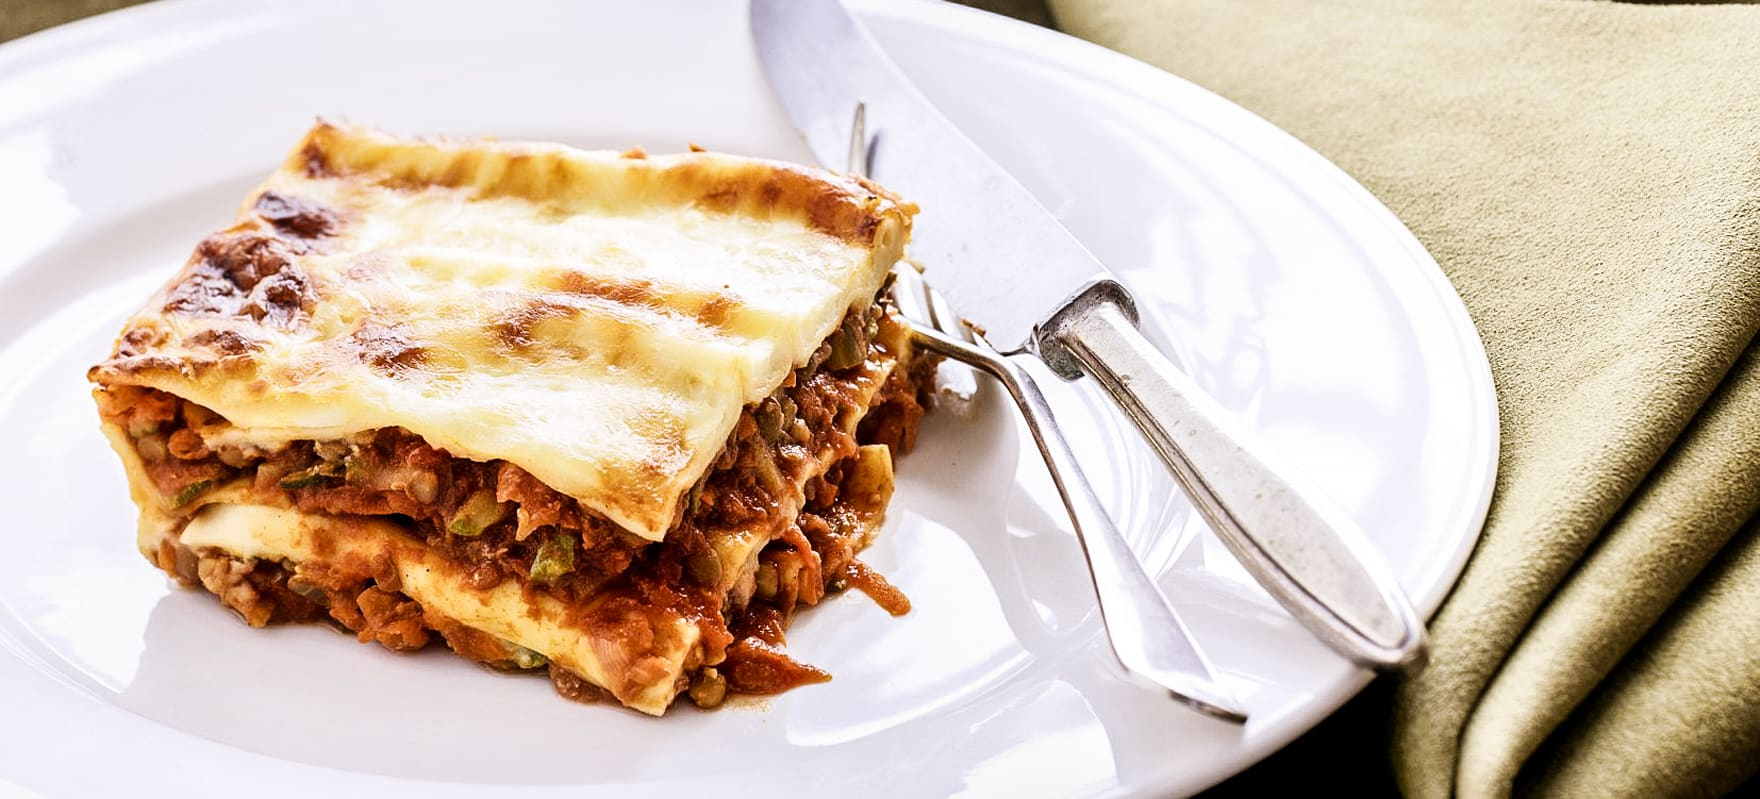 Curried Vegetable And Lentil Lasagne Sanitarium Health Food Company